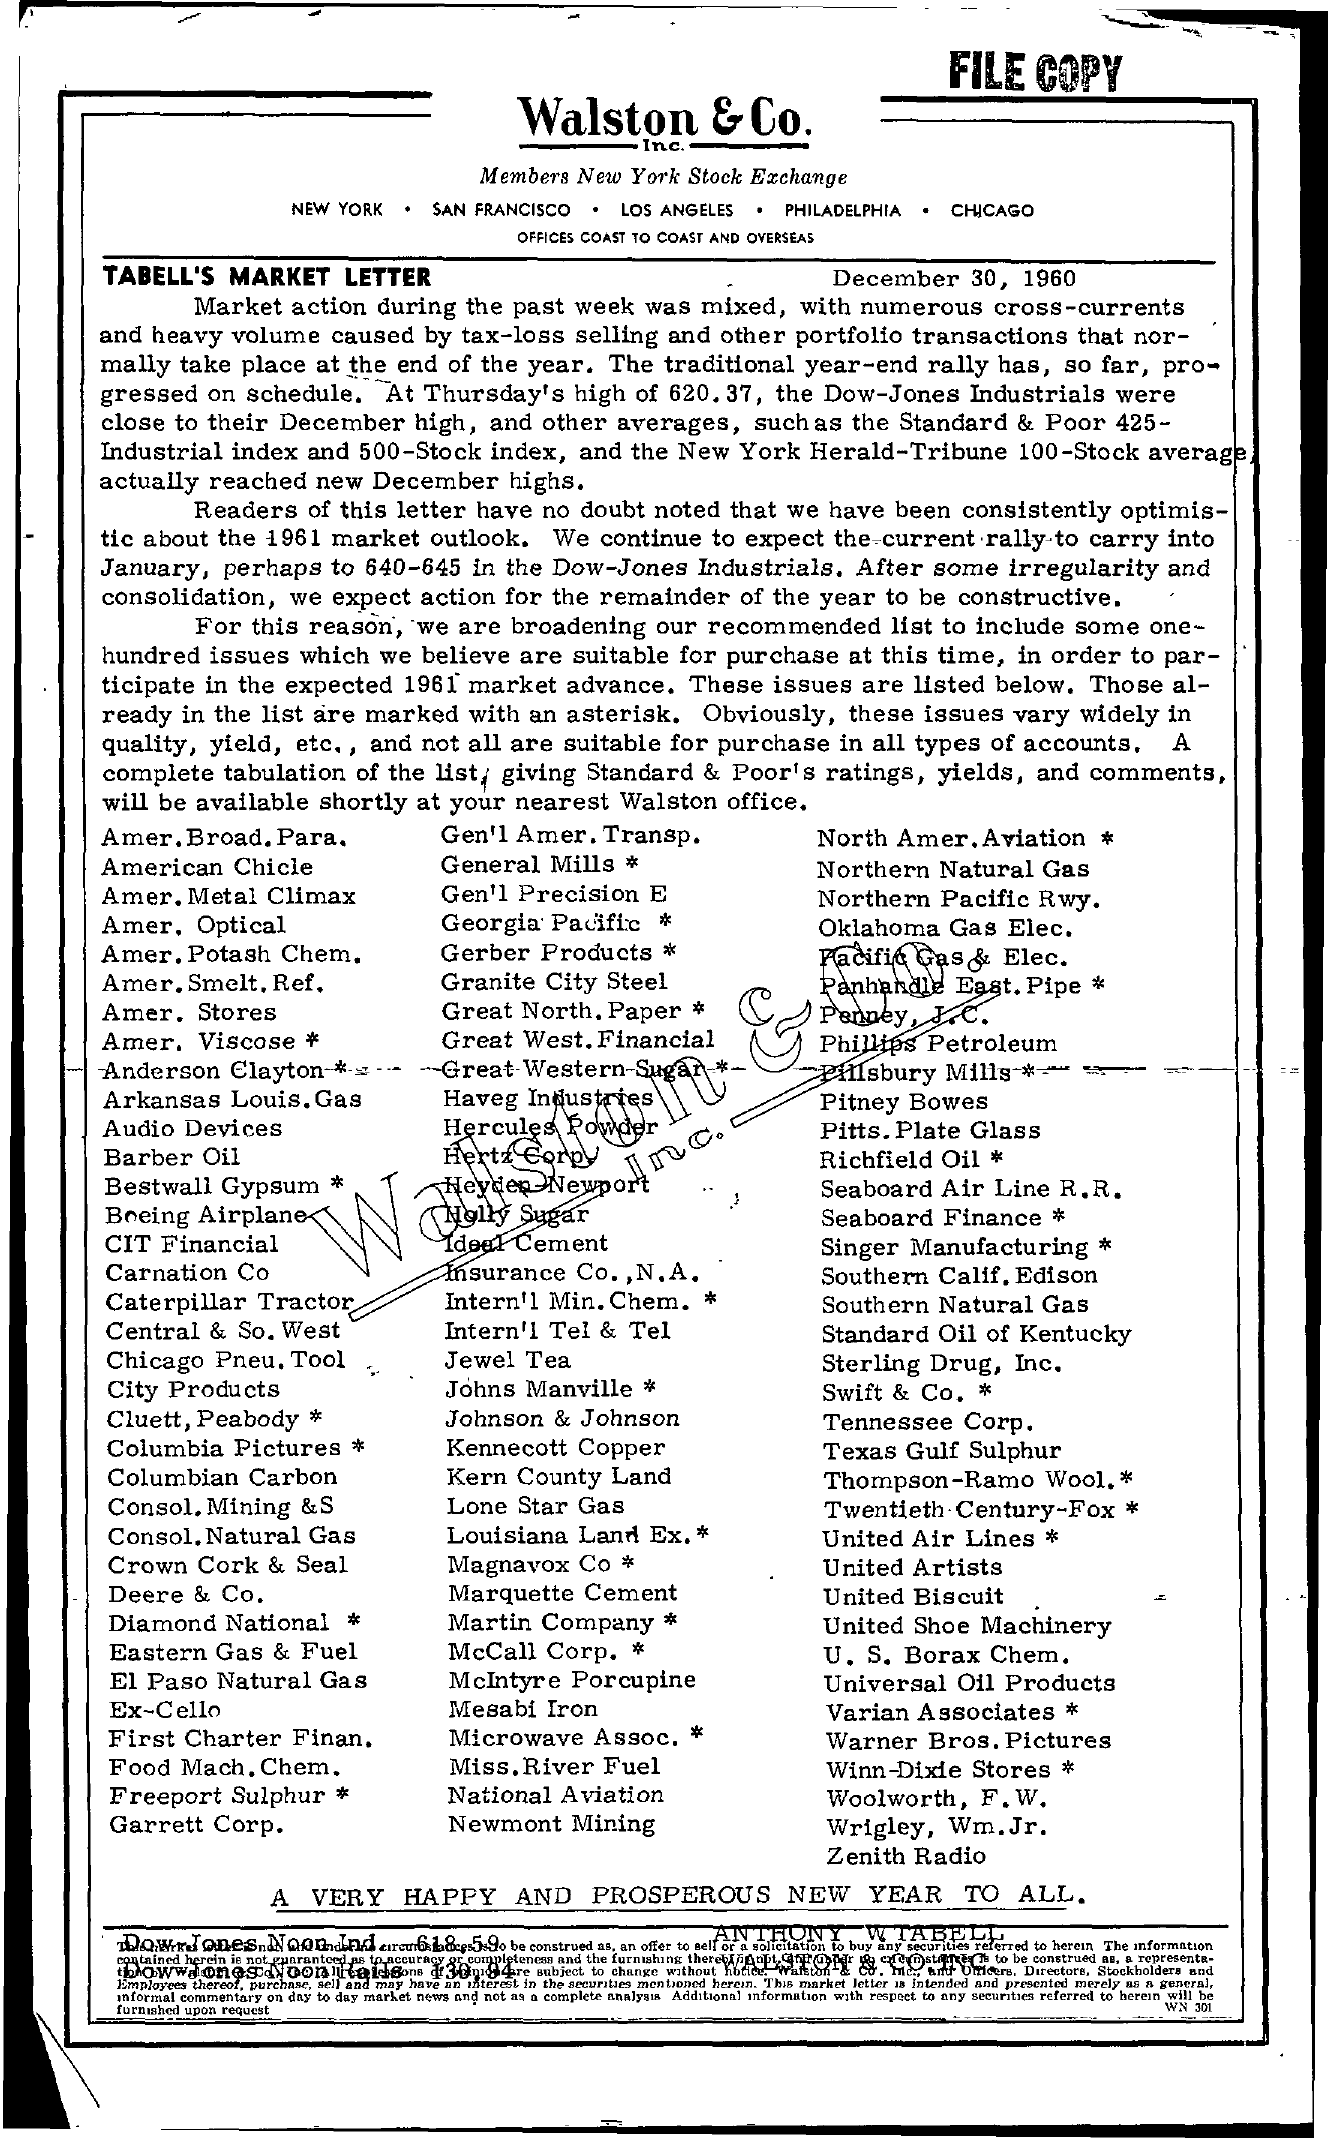 Tabell's Market Letter - December 30, 1960 page 1